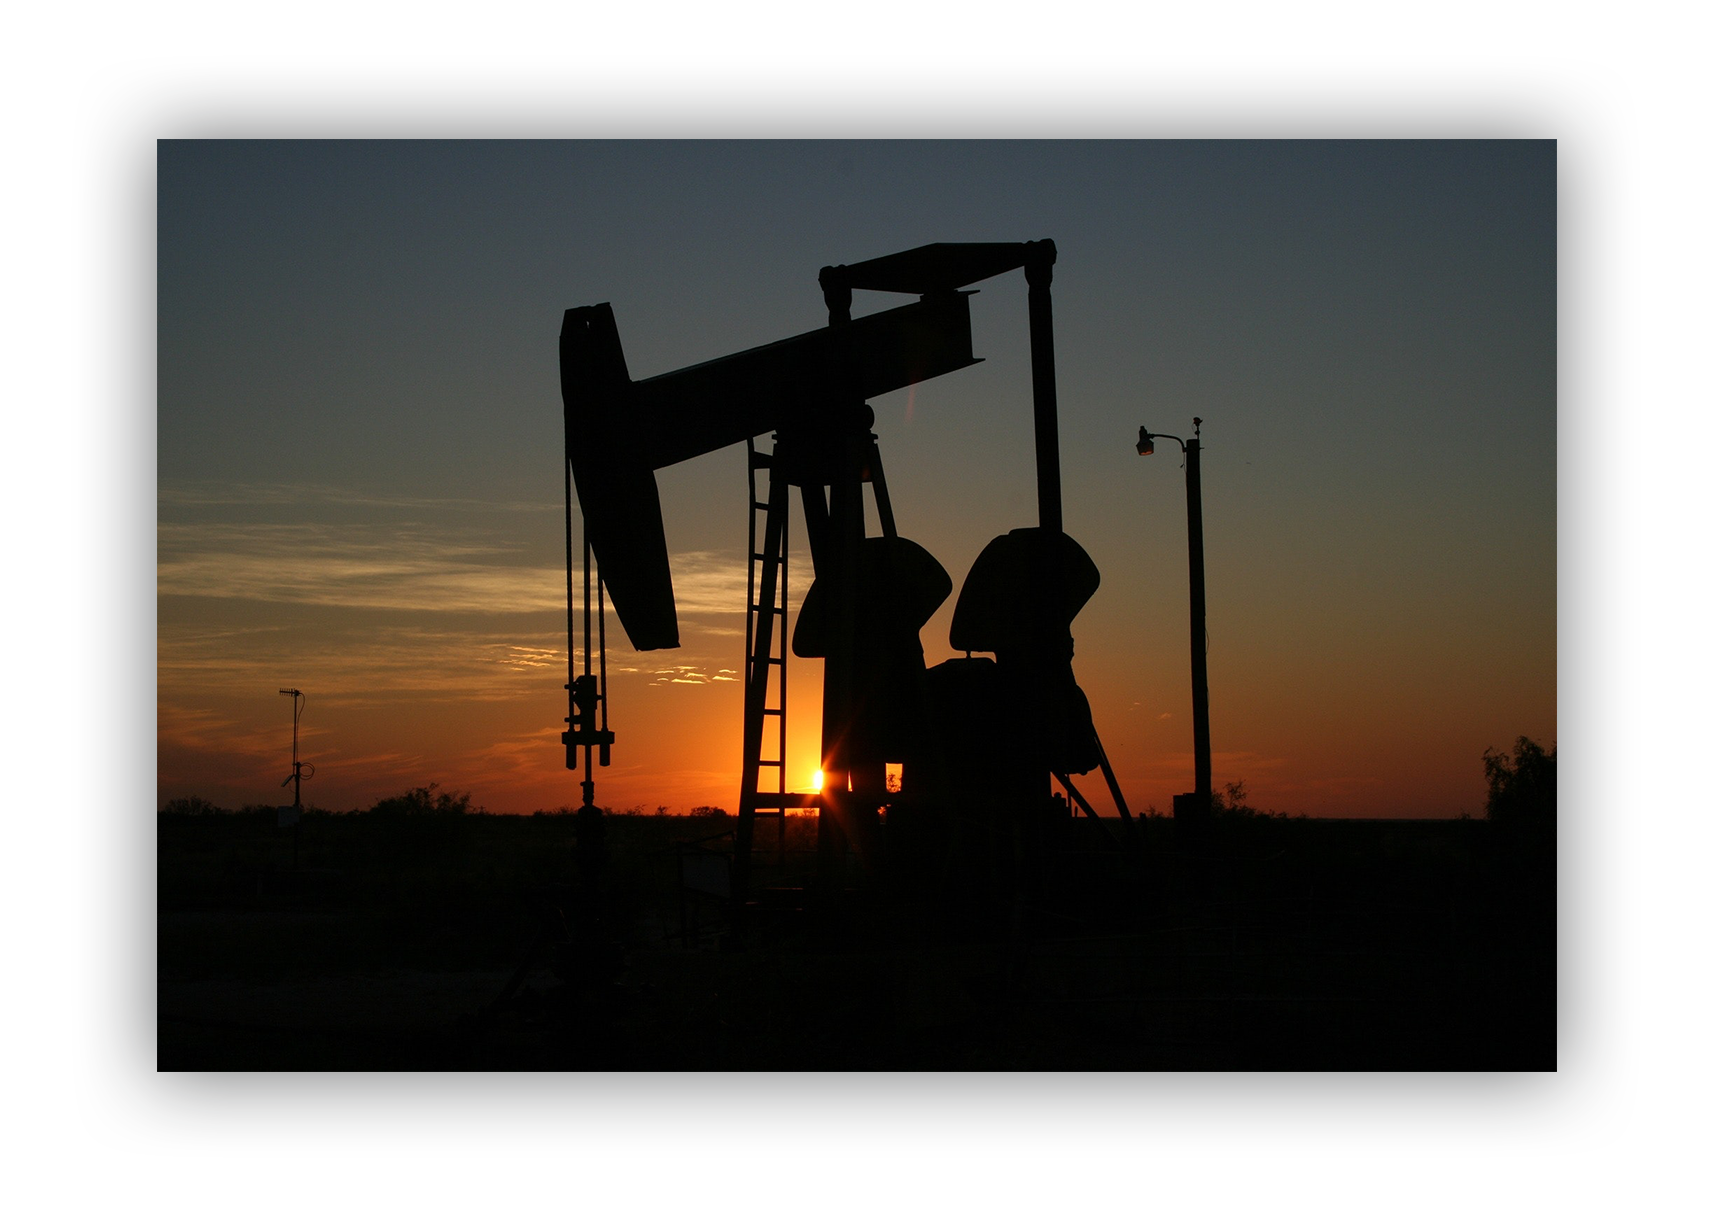 oil and gas drilling at dusk